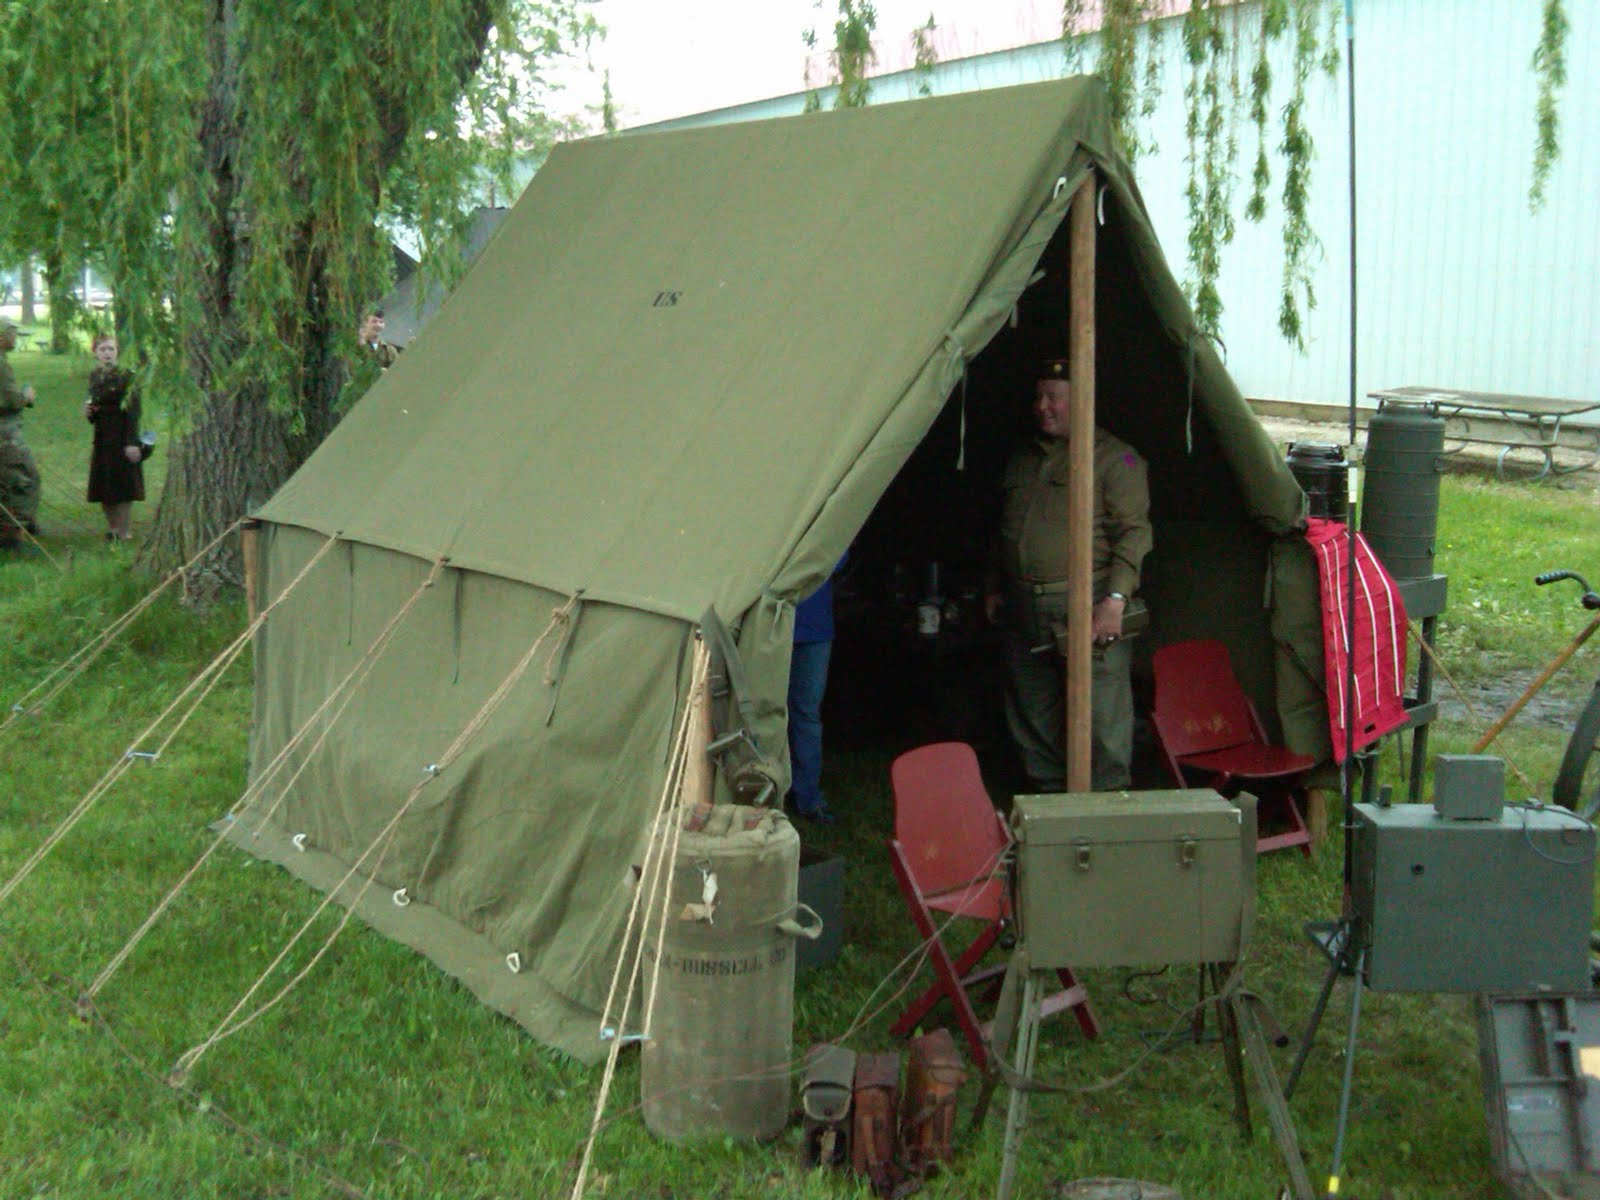 Armbruster Displays WWII Canvas Tents during Anzio Express 2011 & Armbruster Manufacturing Co. | Armbruster Displays WWII Canvas ...